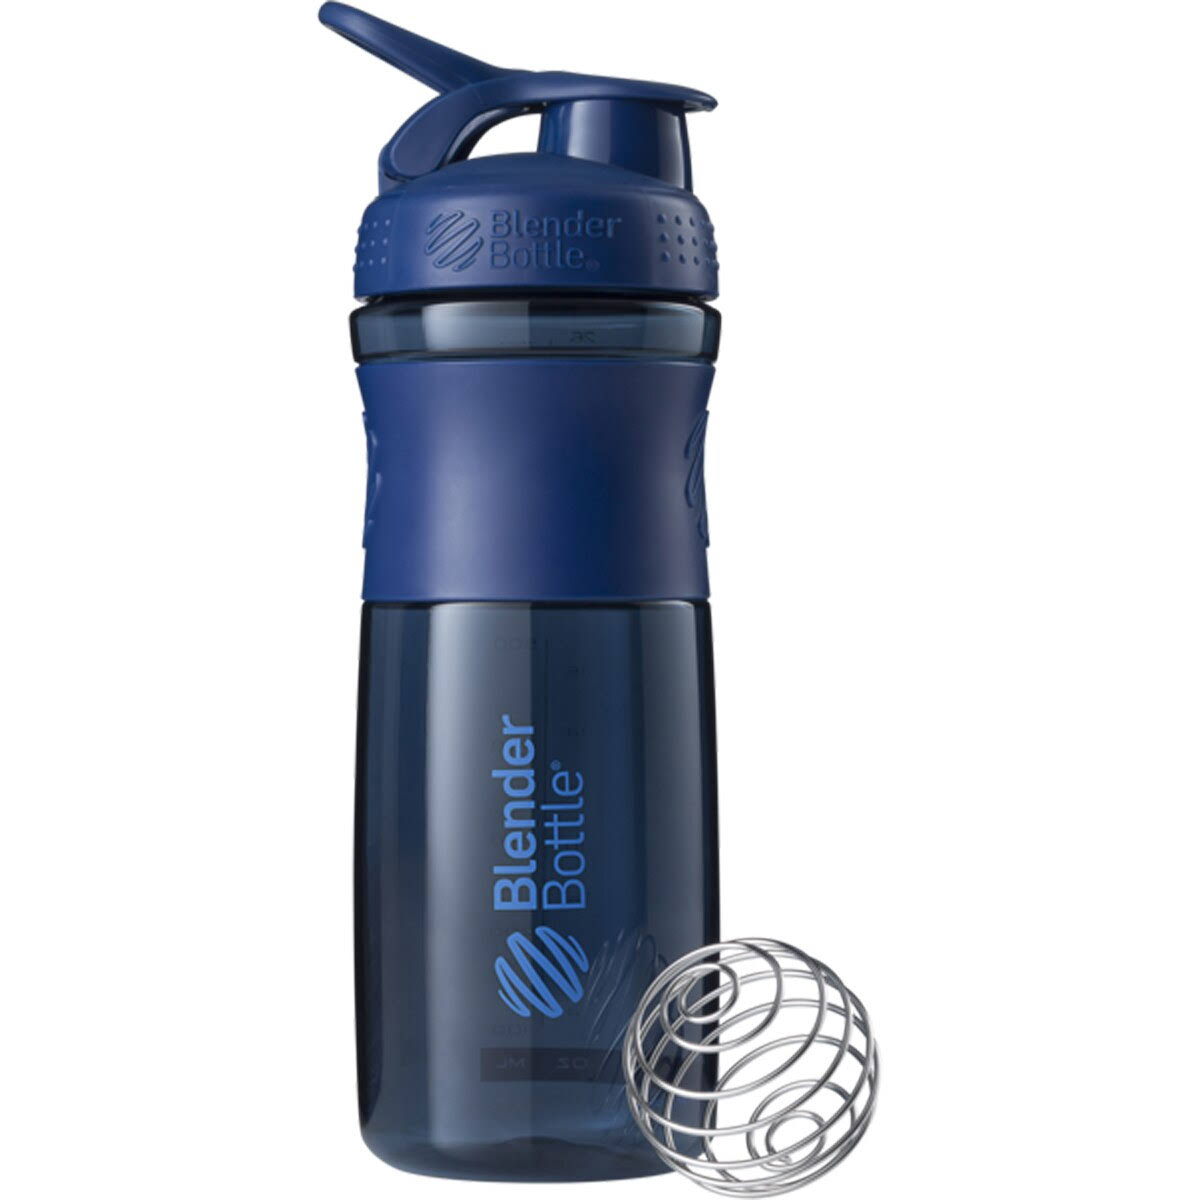 Blender Bottle Sport Mixer Protein Shaker Cup - Navy Blue, 28oz